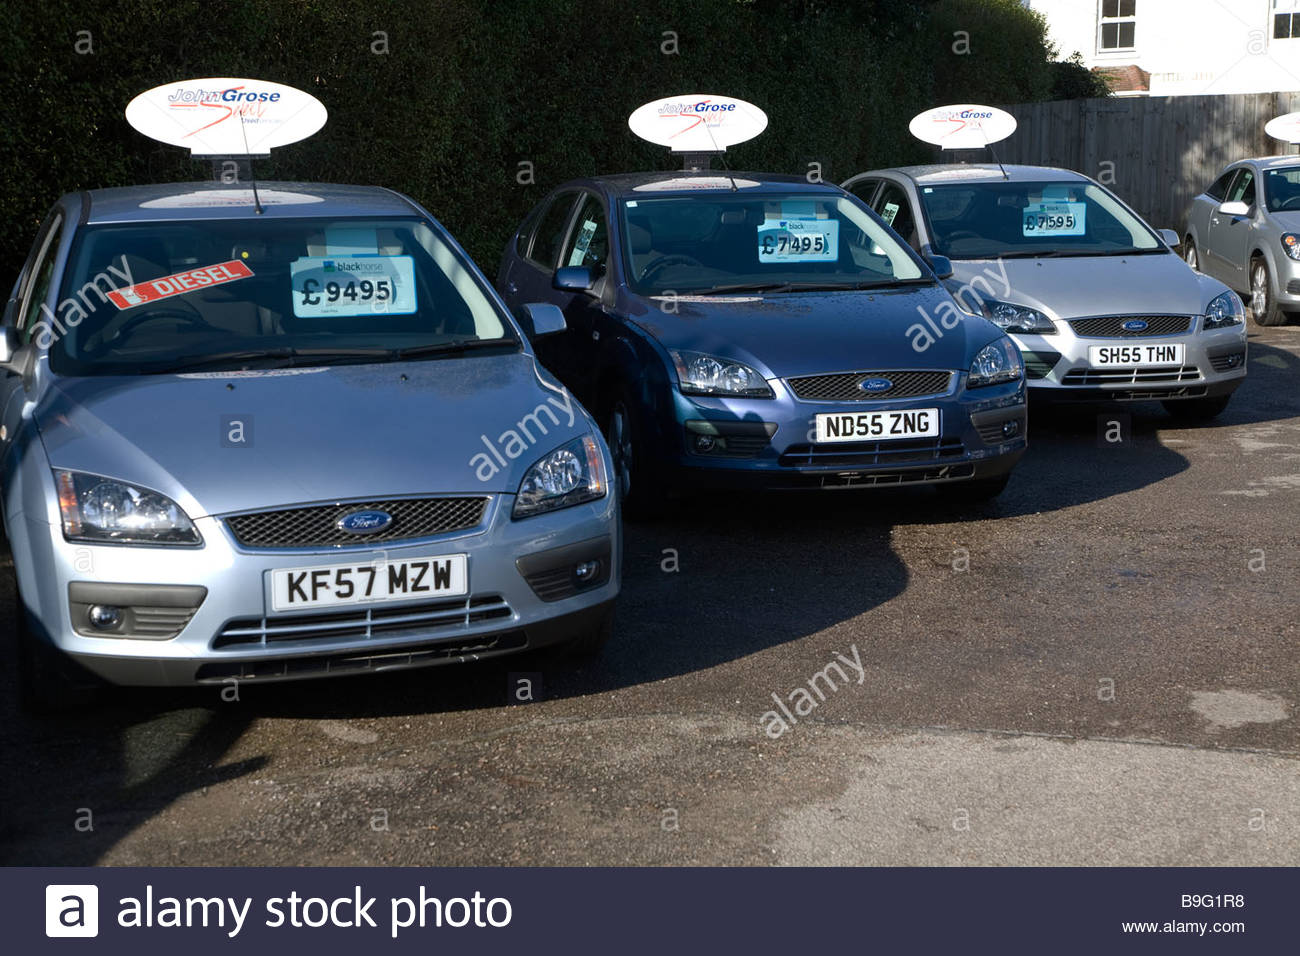 2nd Hand Cars for Sale Near Me Luxury Second Hand Cars High Resolution Stock Photography and Images - Alamy